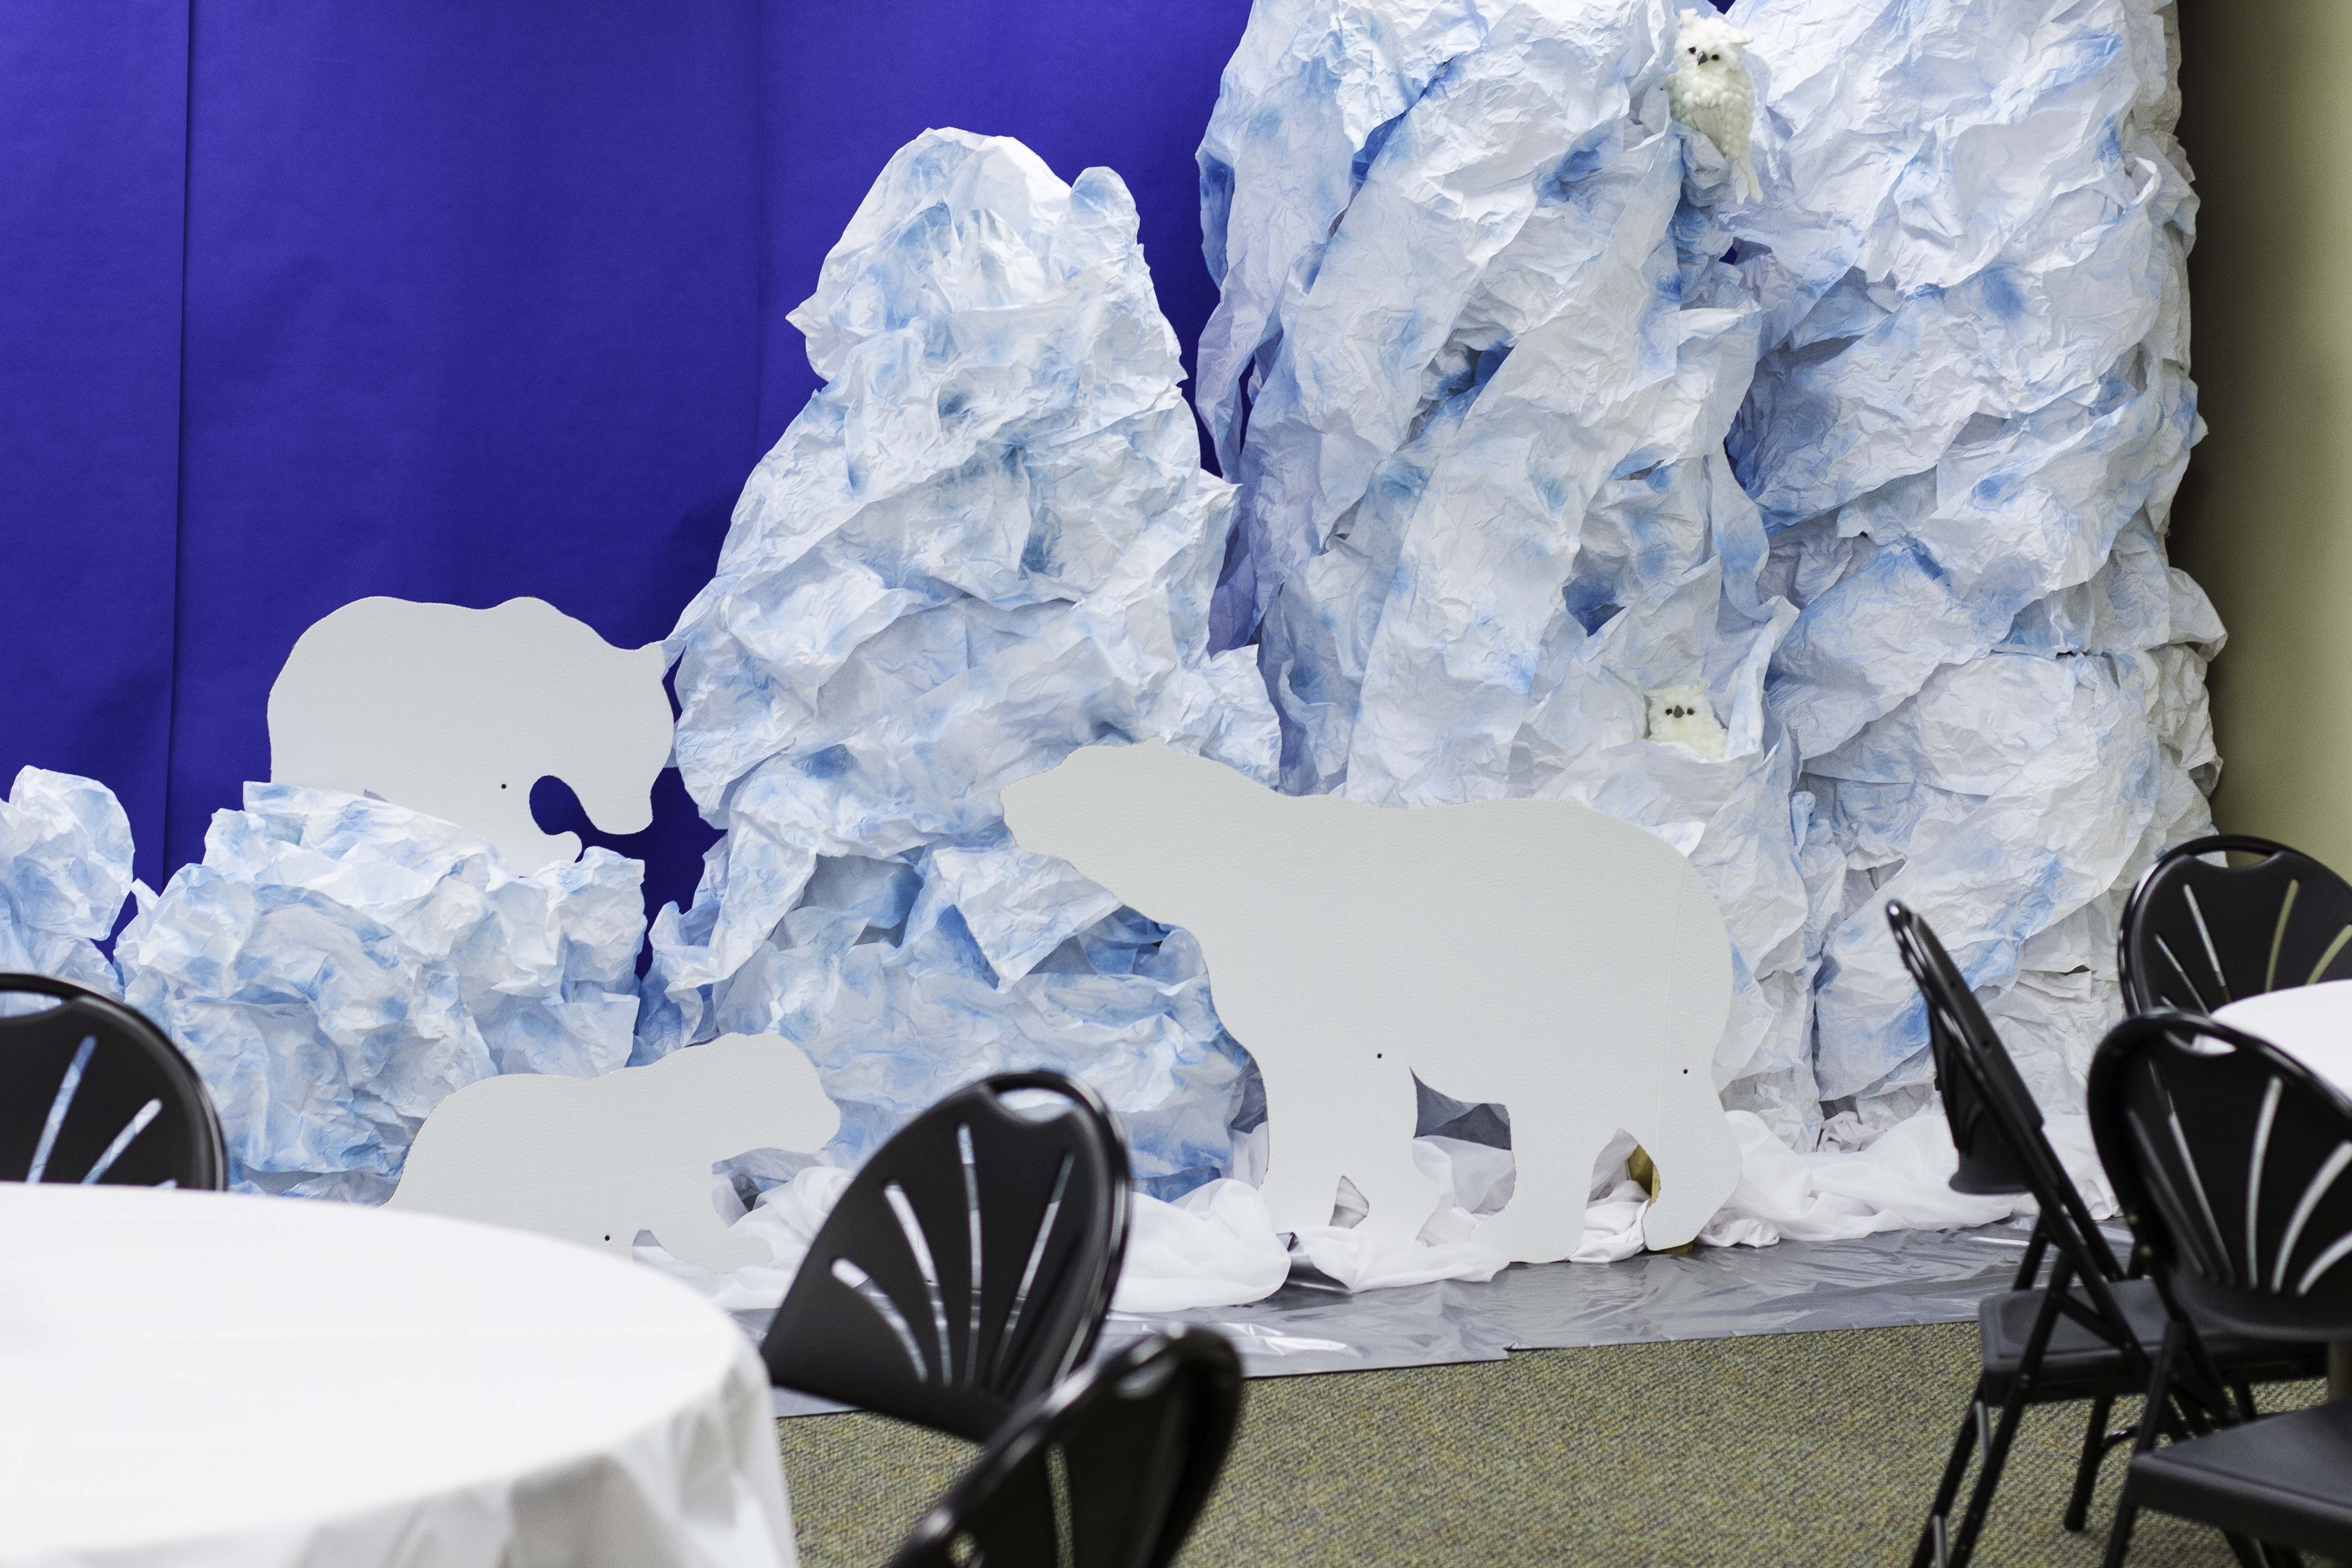 Classroom Decoration Ideas With Paper ~ Polar bear and snow decoration ideas for operationarctic